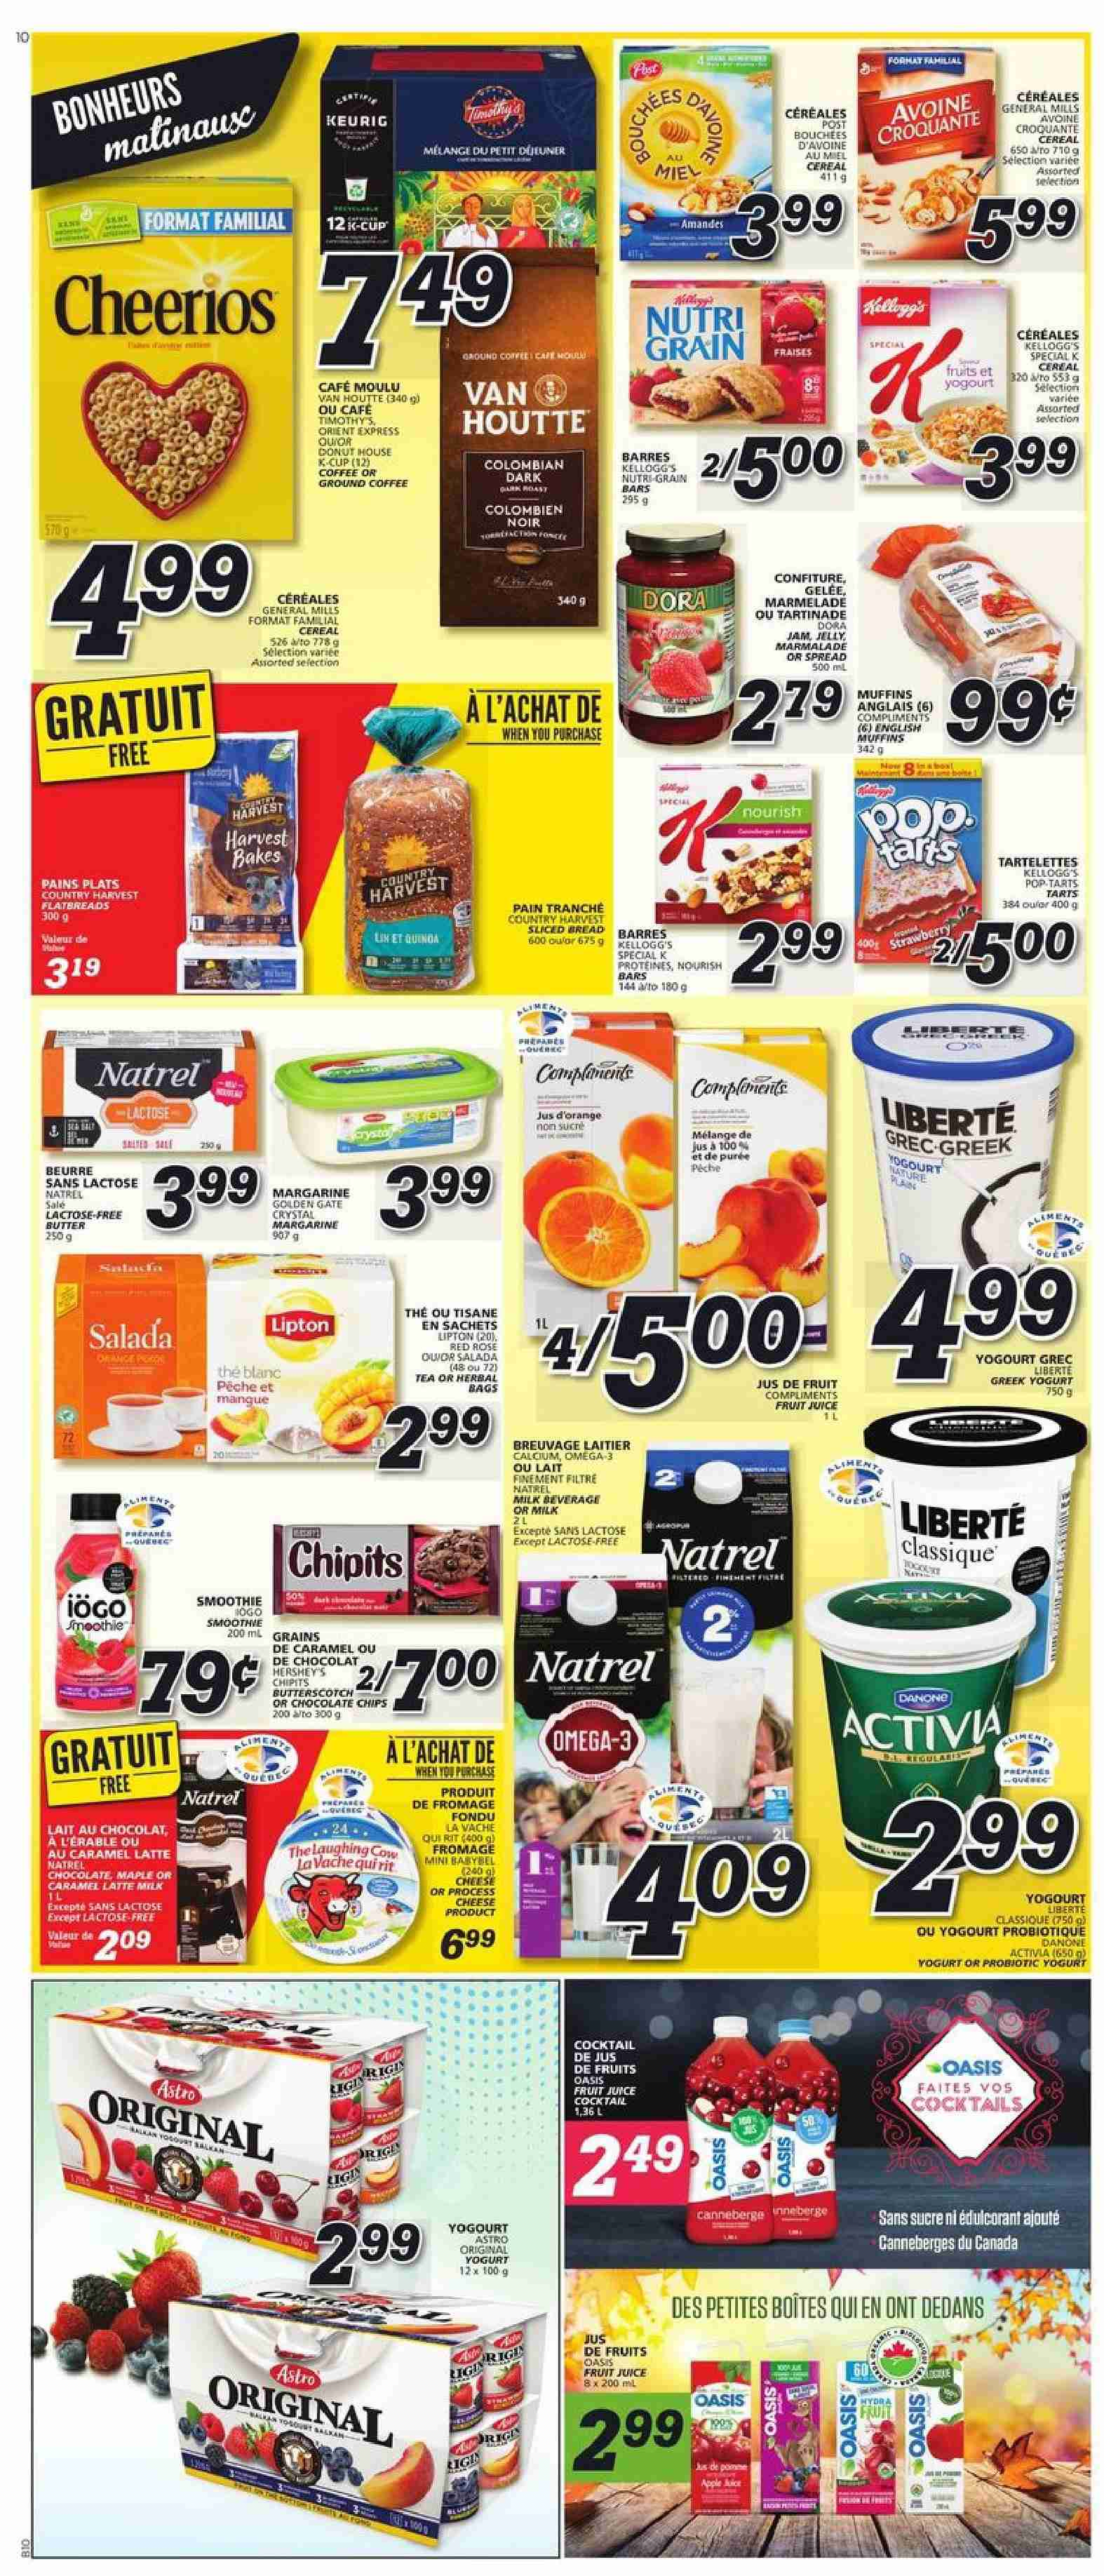 IGA Flyer  - October 11, 2018 - October 17, 2018. Page 9.